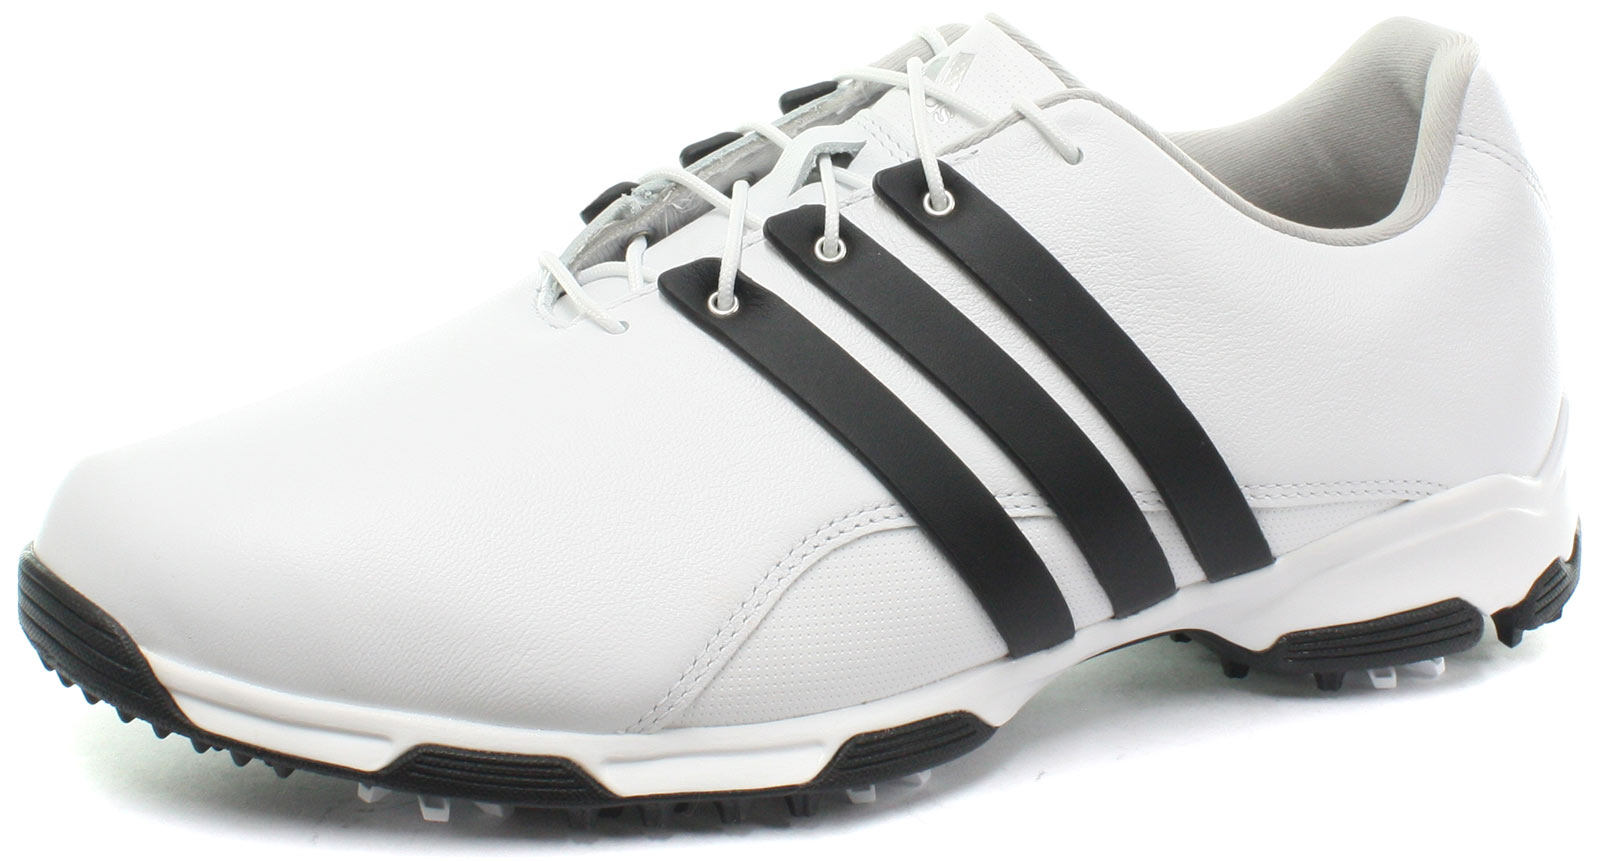 bd04f464eb28 ... Waterproof Golf Shoes With Spikes F33418 White UK Size 10.5. About this  product. Picture 1 of 6 ...